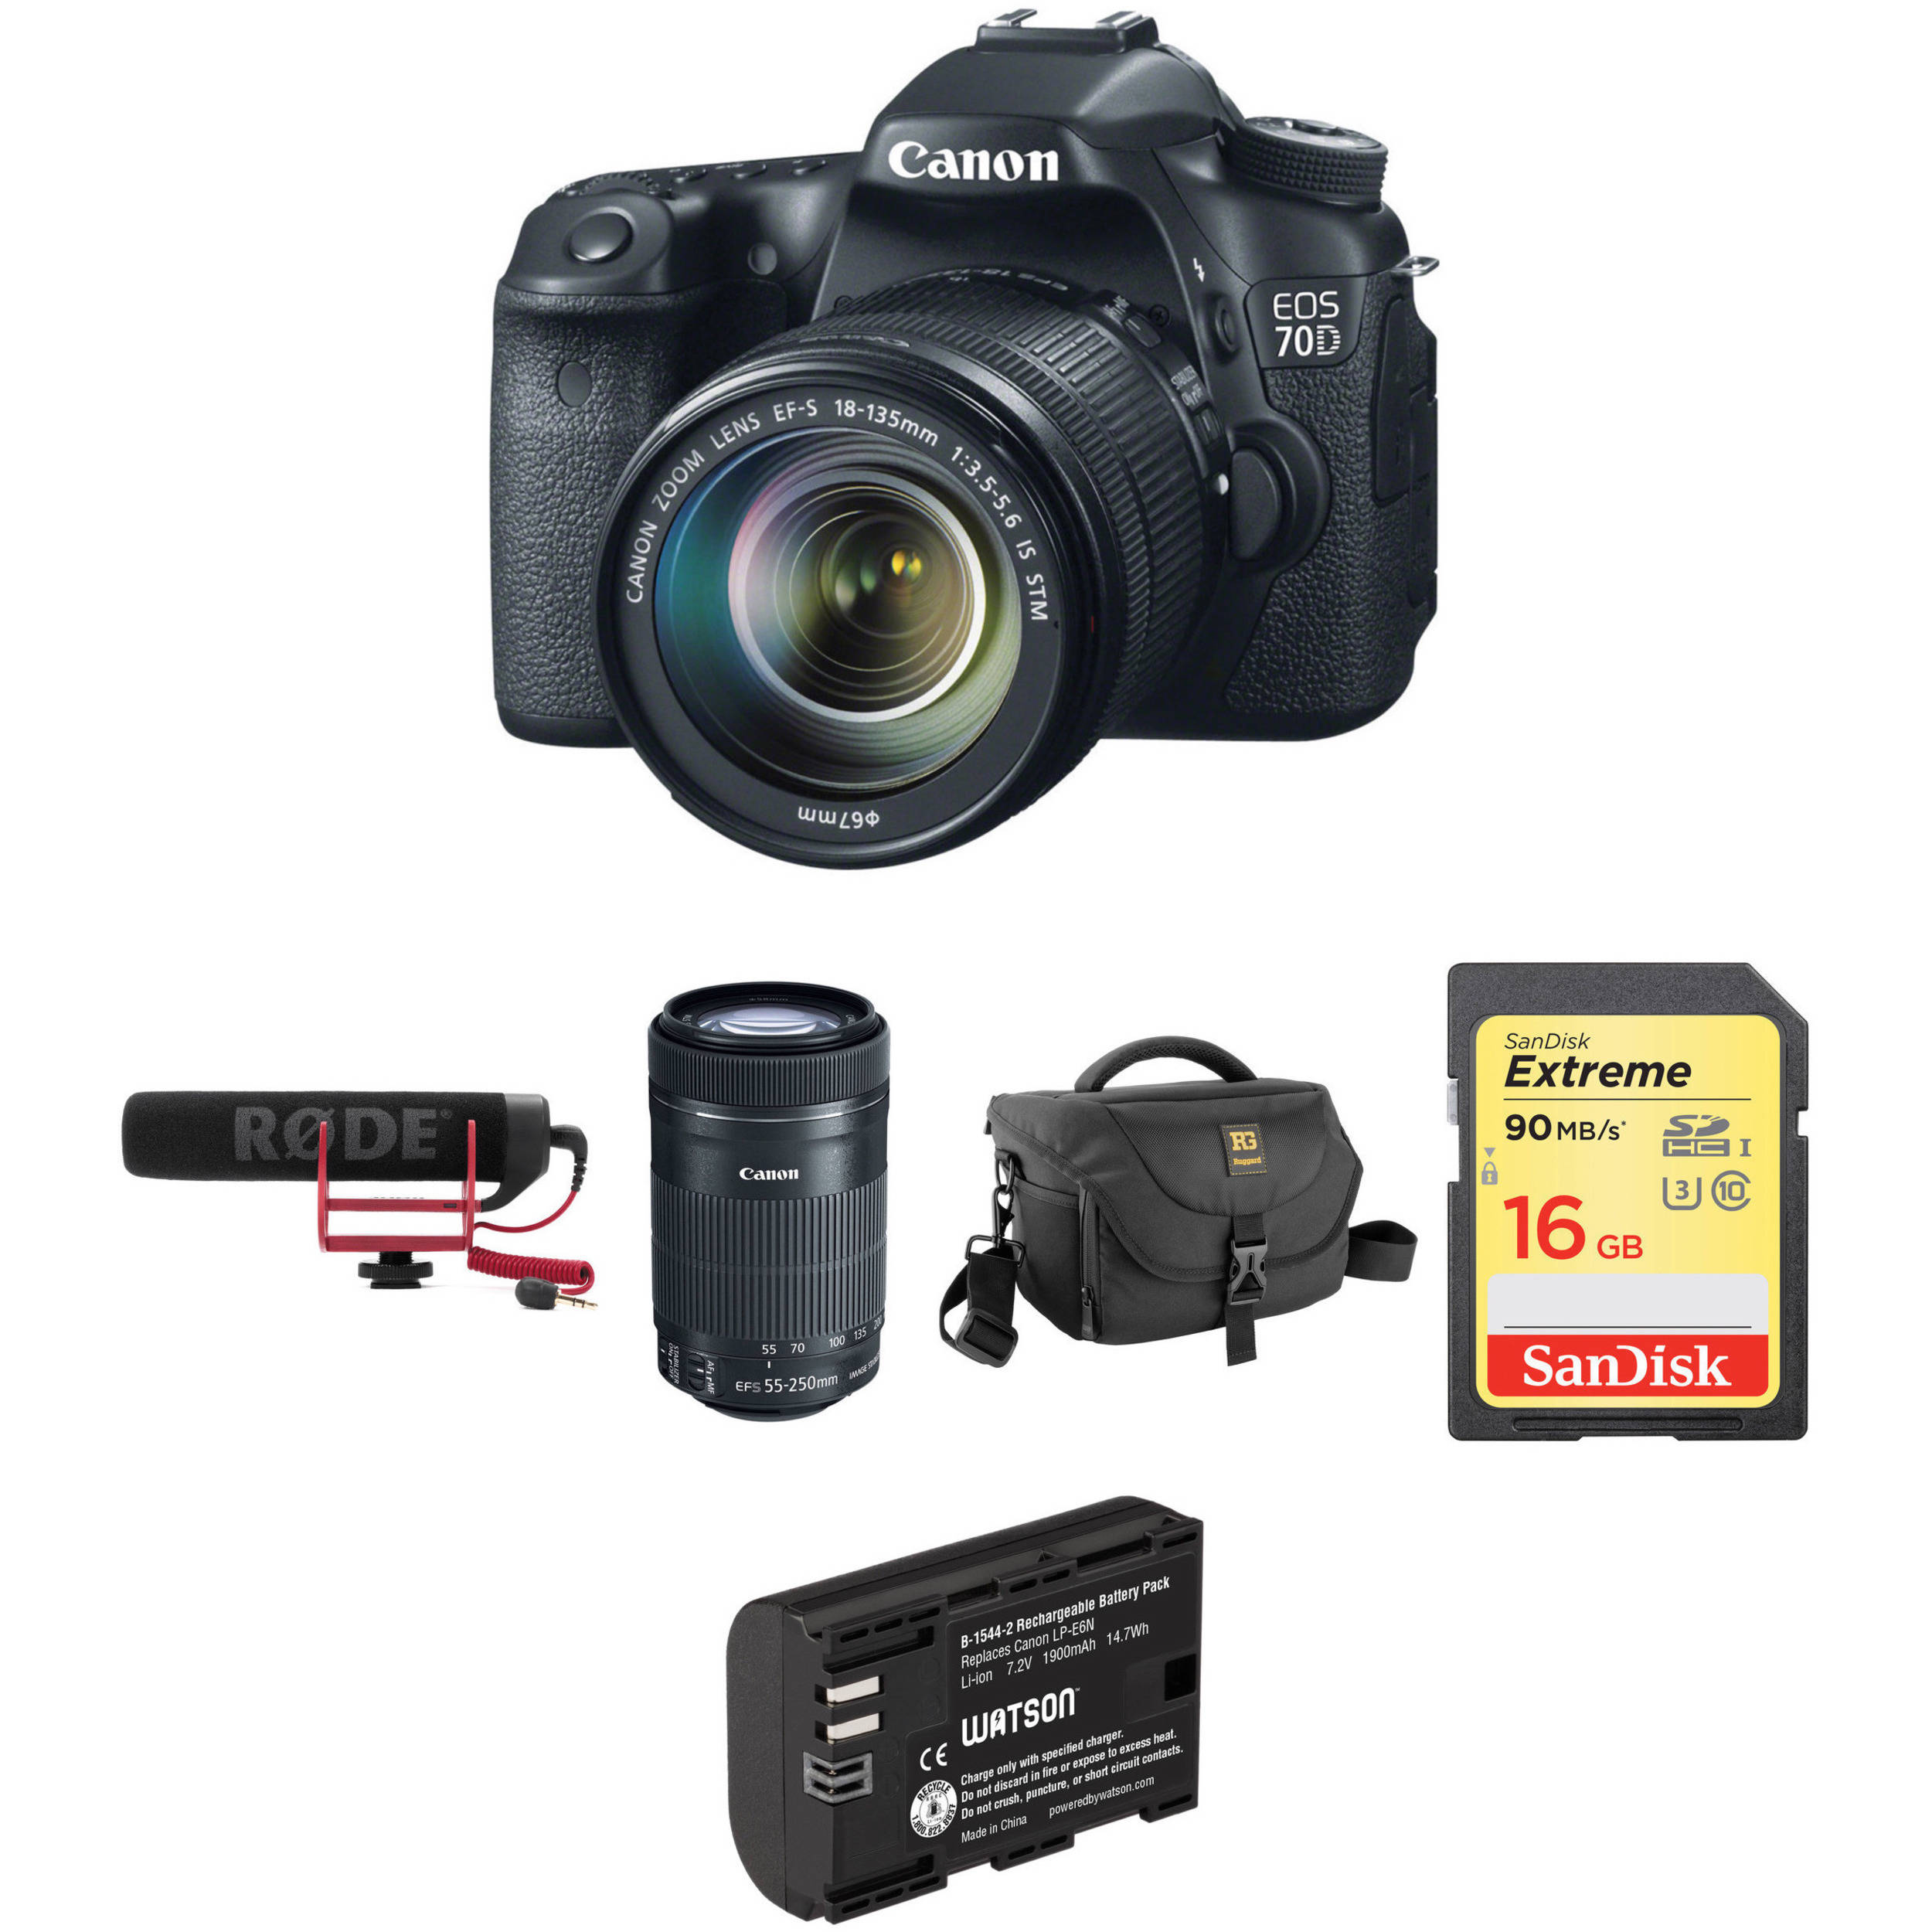 Canon EOS 70D DSLR Camera with 18135mm Lens Video Creator Kit